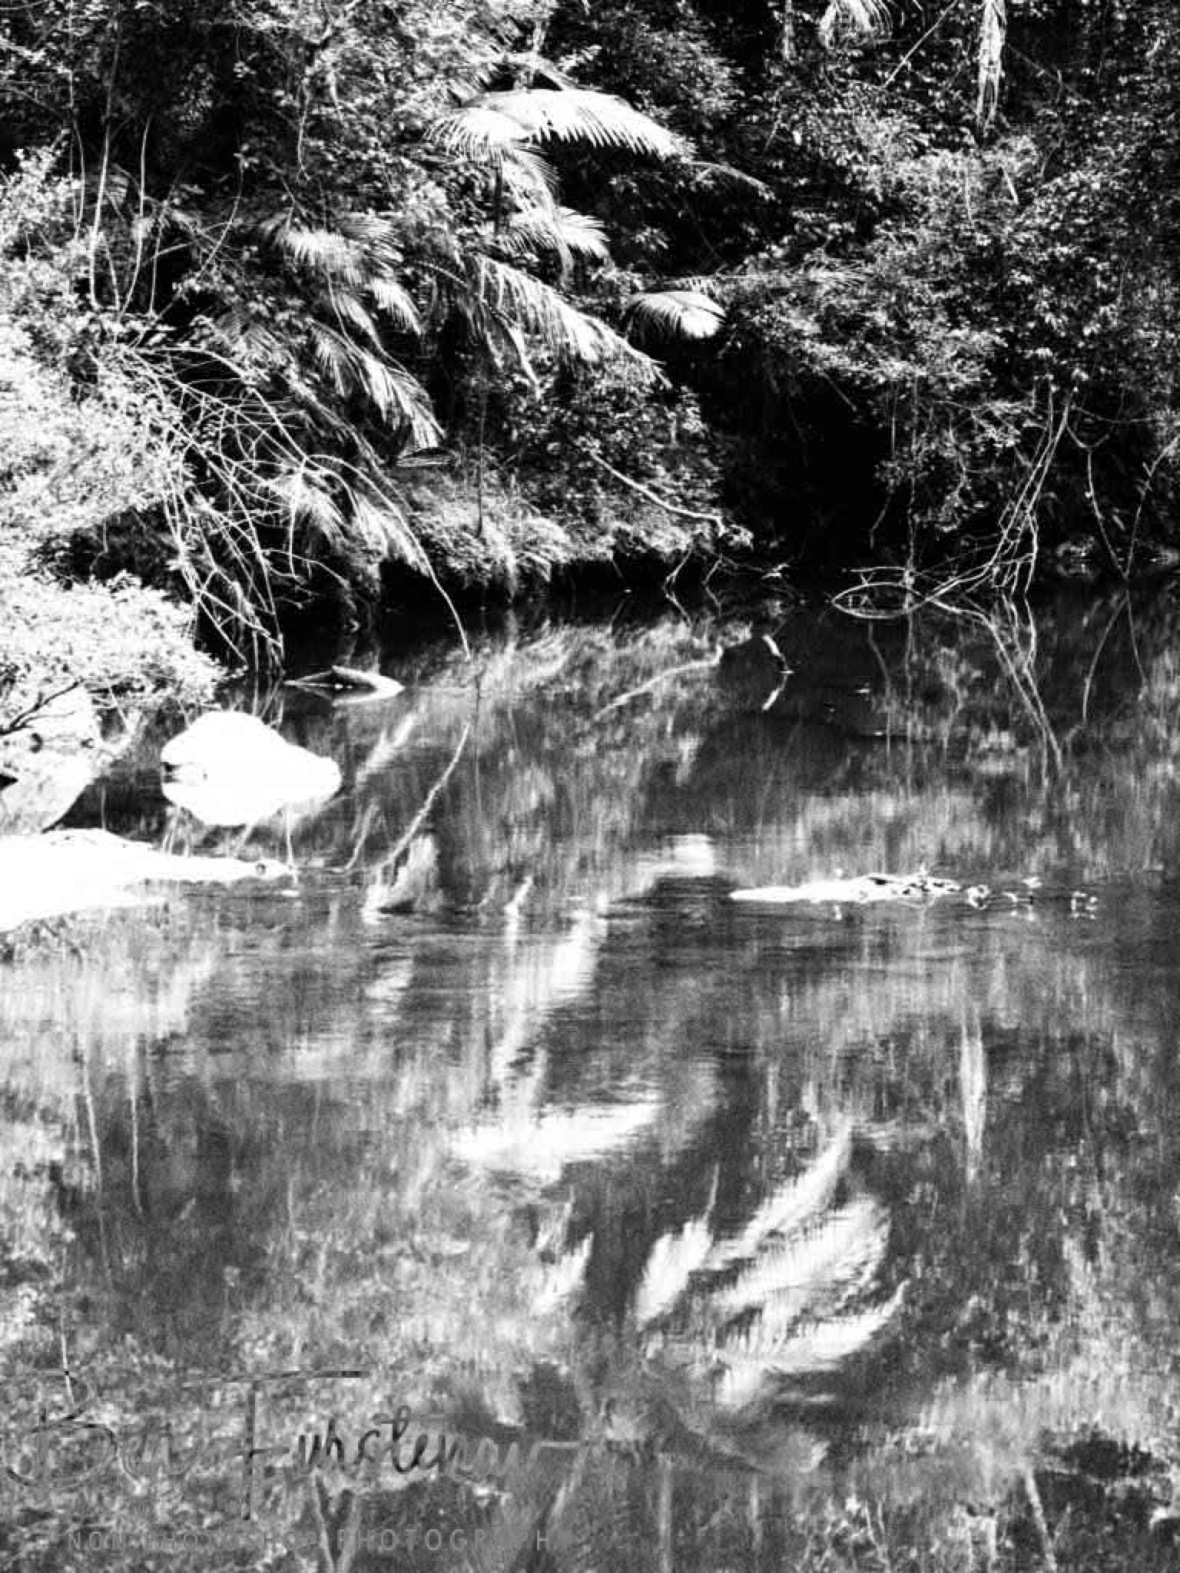 Stunning reflections in black and white at Eungalla National Park, Queensland, Australia